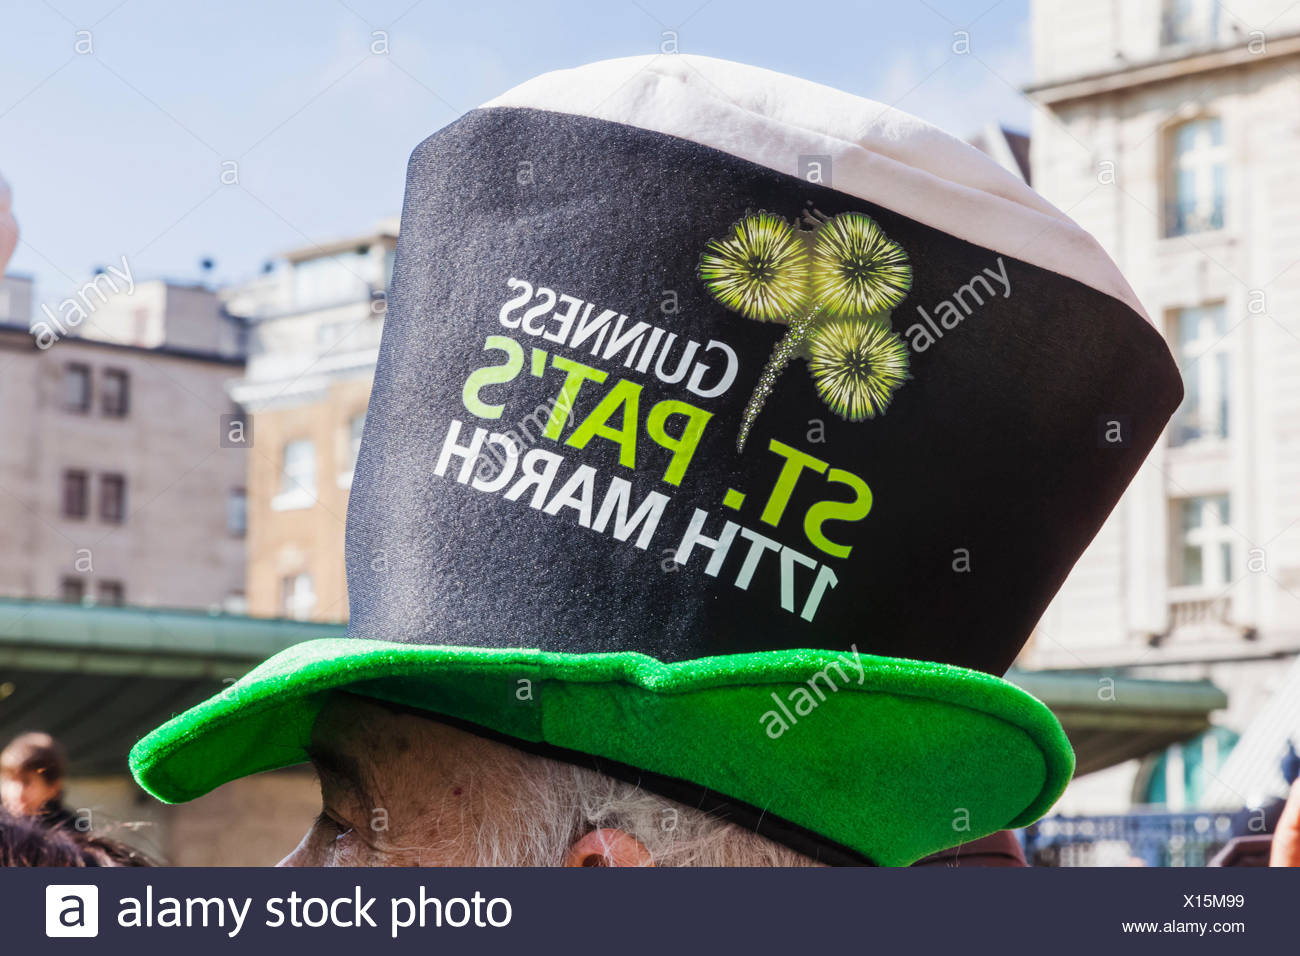 England, London, St.Patrick's Day Parade, Parade Spectator Wearing Guinness Top Hat - Stock Image